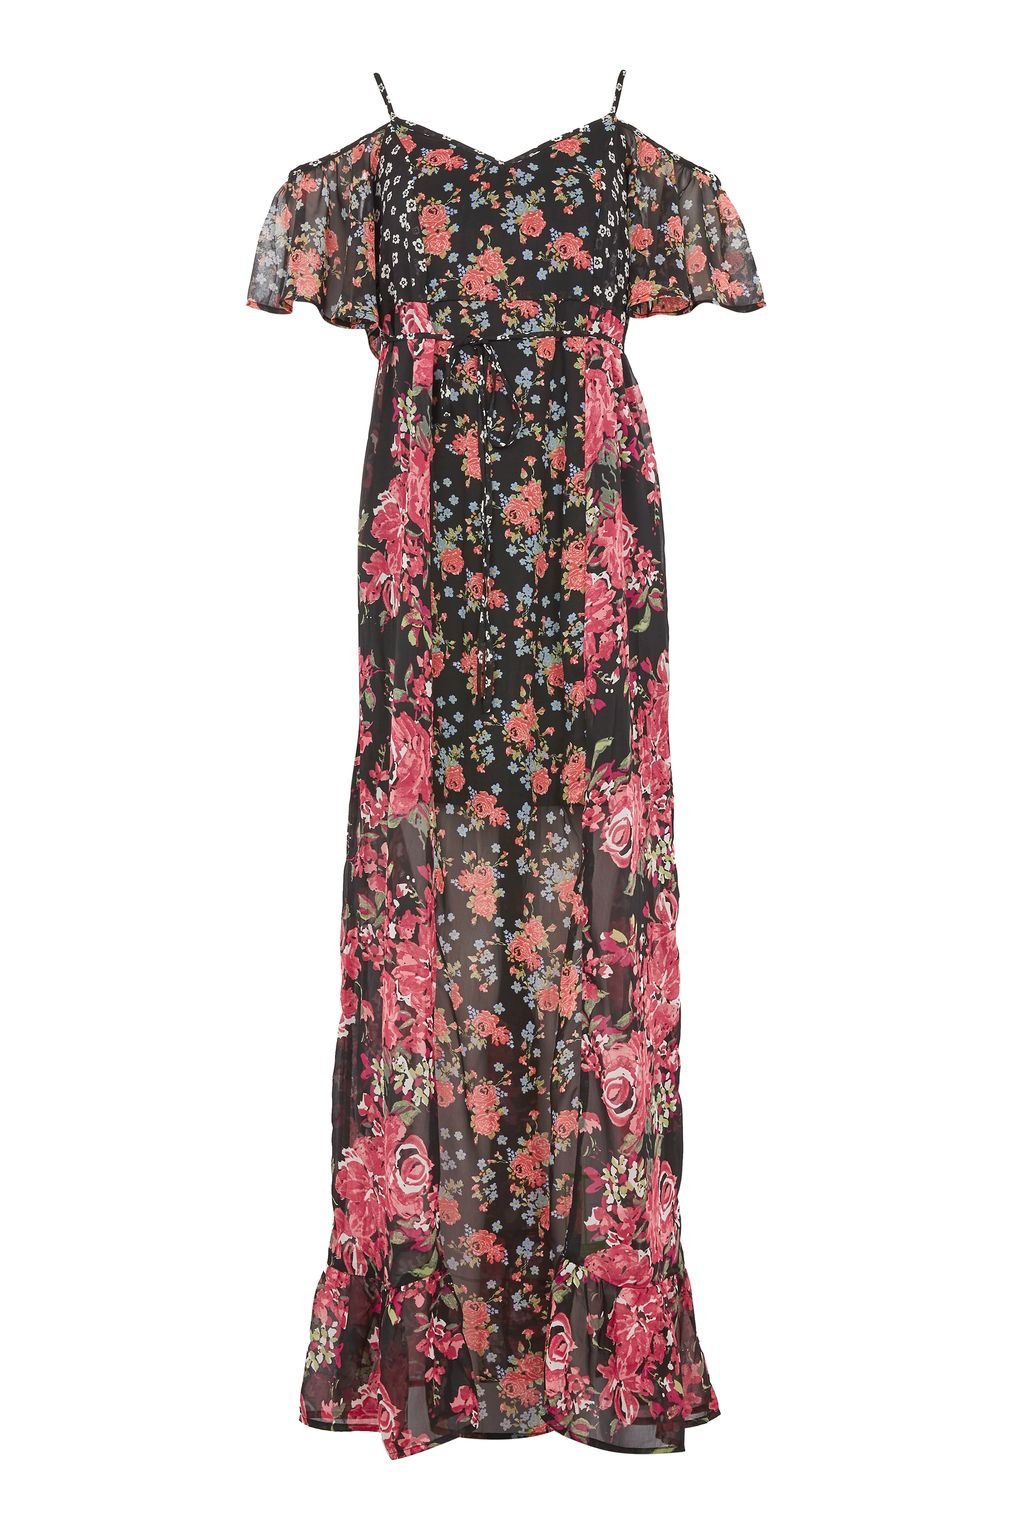 Cold Shoulder Maxi Dress by Band of Gypsies BY TOYSHOP